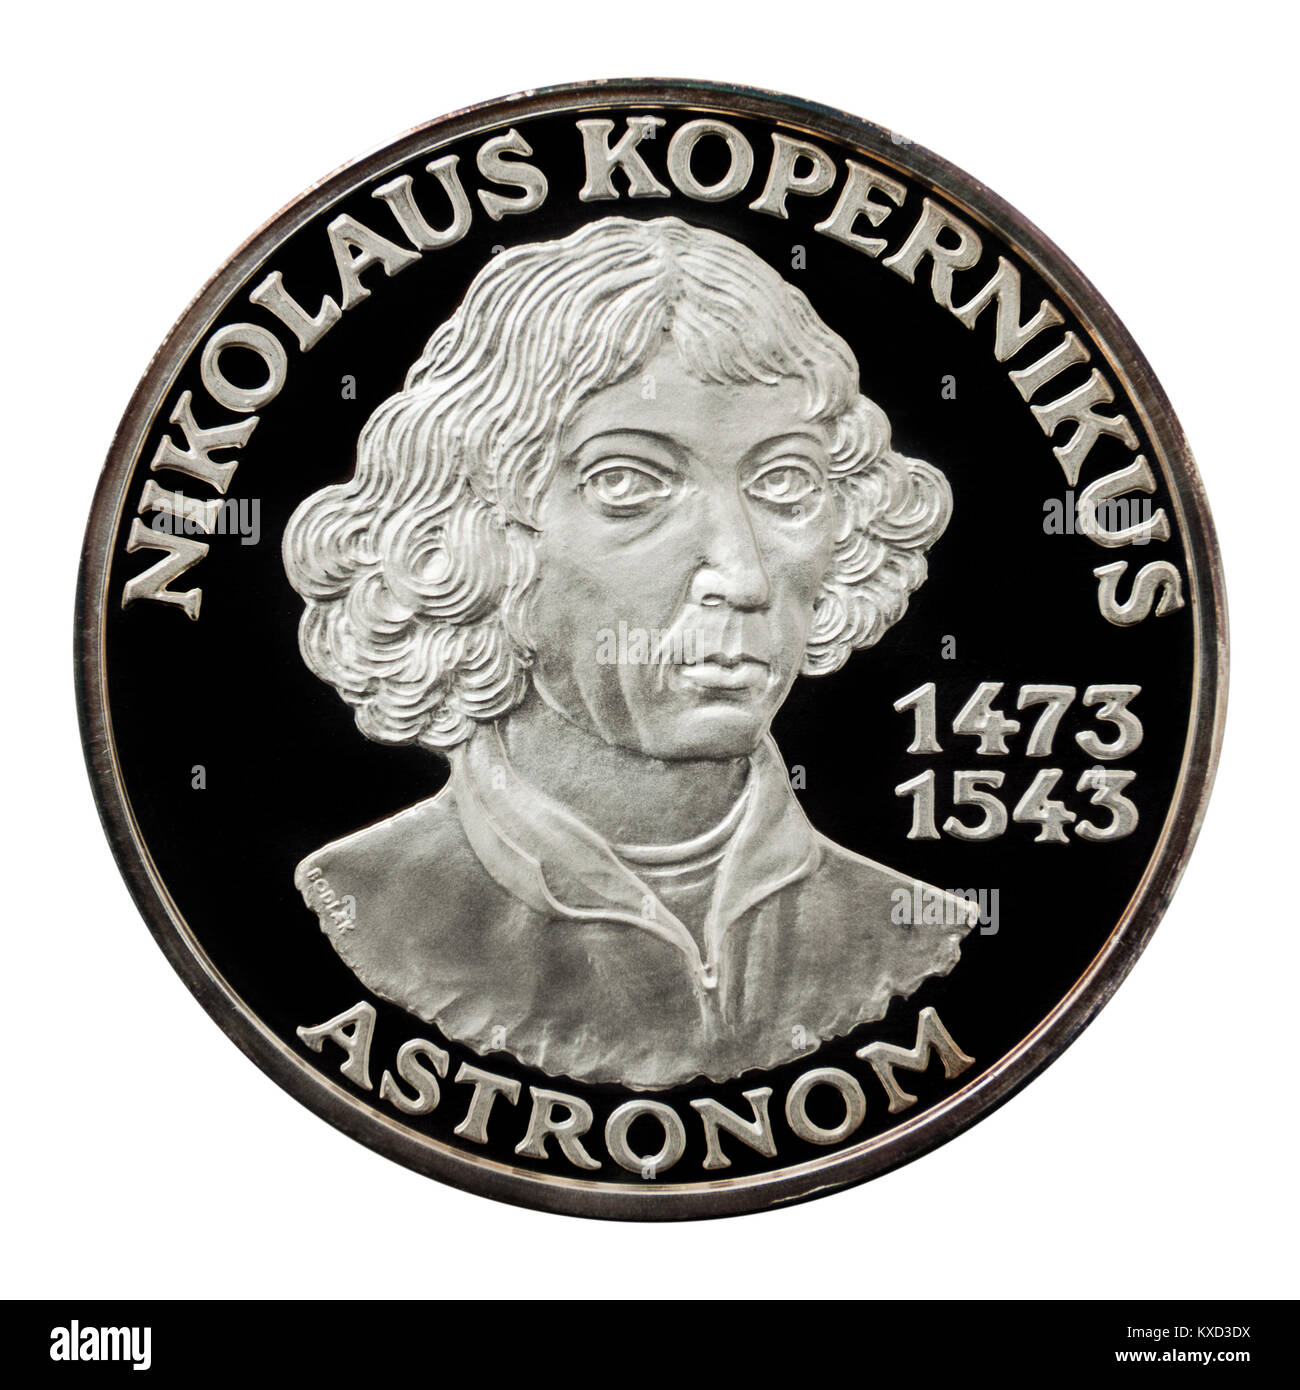 99.9% Proof Silver Medallion featuring Nicolaus Copernicus, the famous Polish astronomer, mathematician and economist. - Stock Image